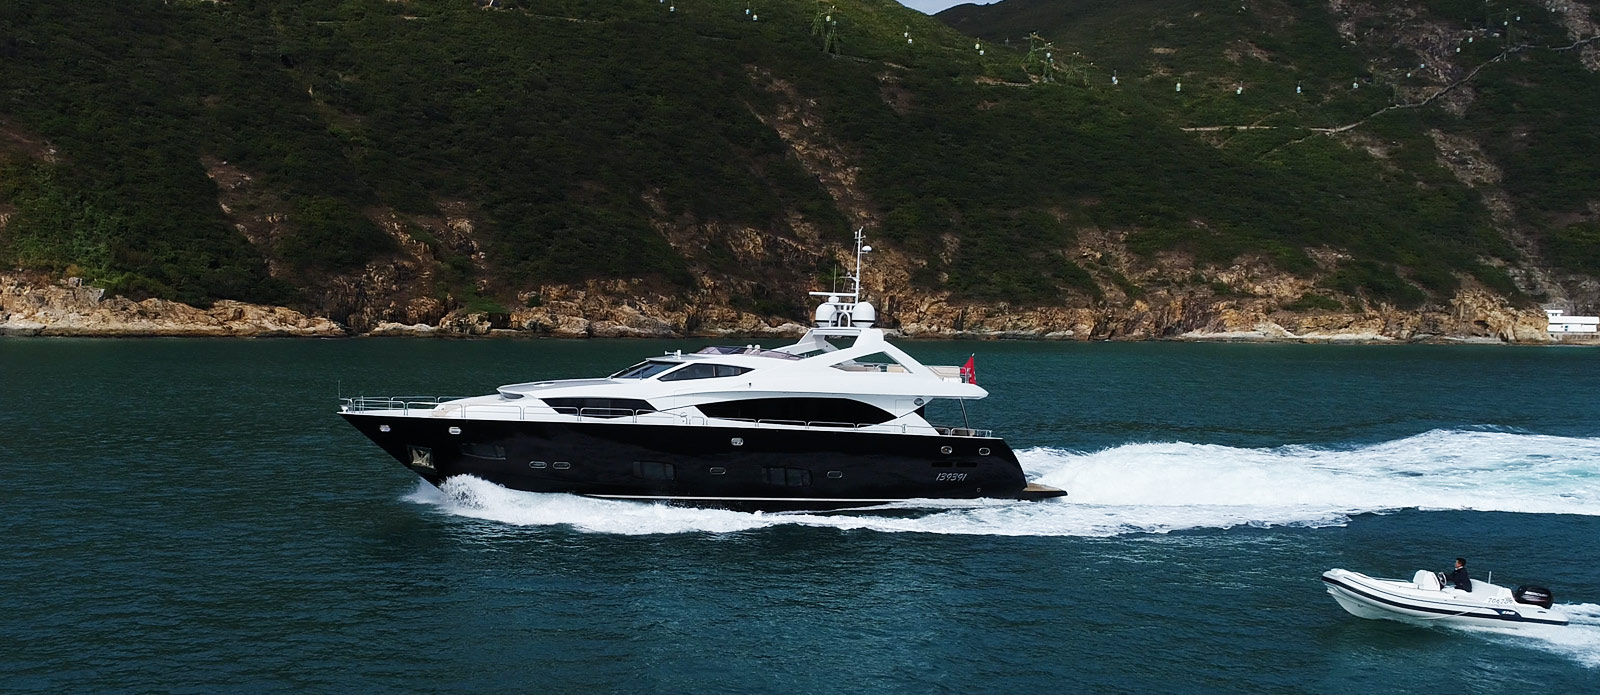 Sunseeker-30-Metre-Yacht-Coraysa-Cruising-with-Tender